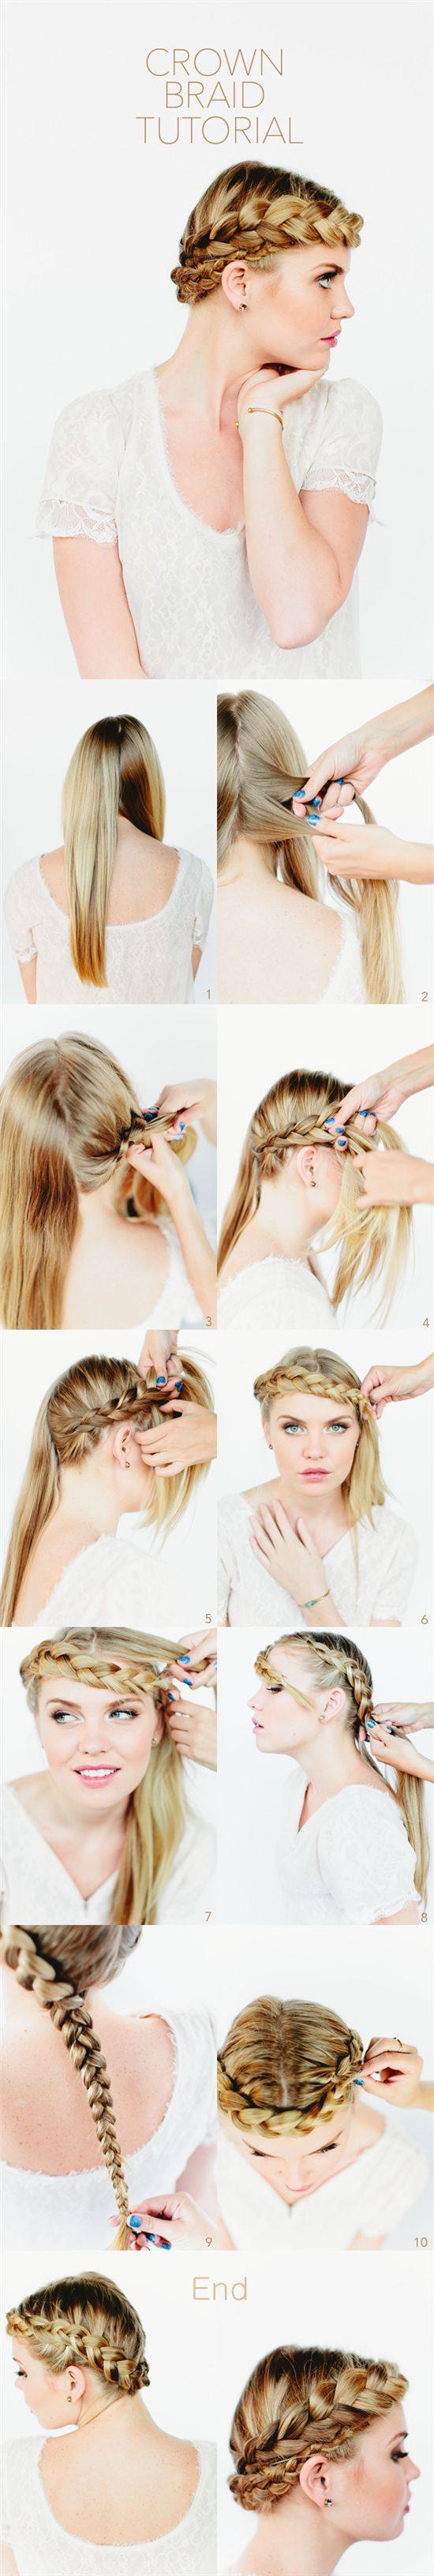 diy crown braids at home by clip in silky brown hair extensions